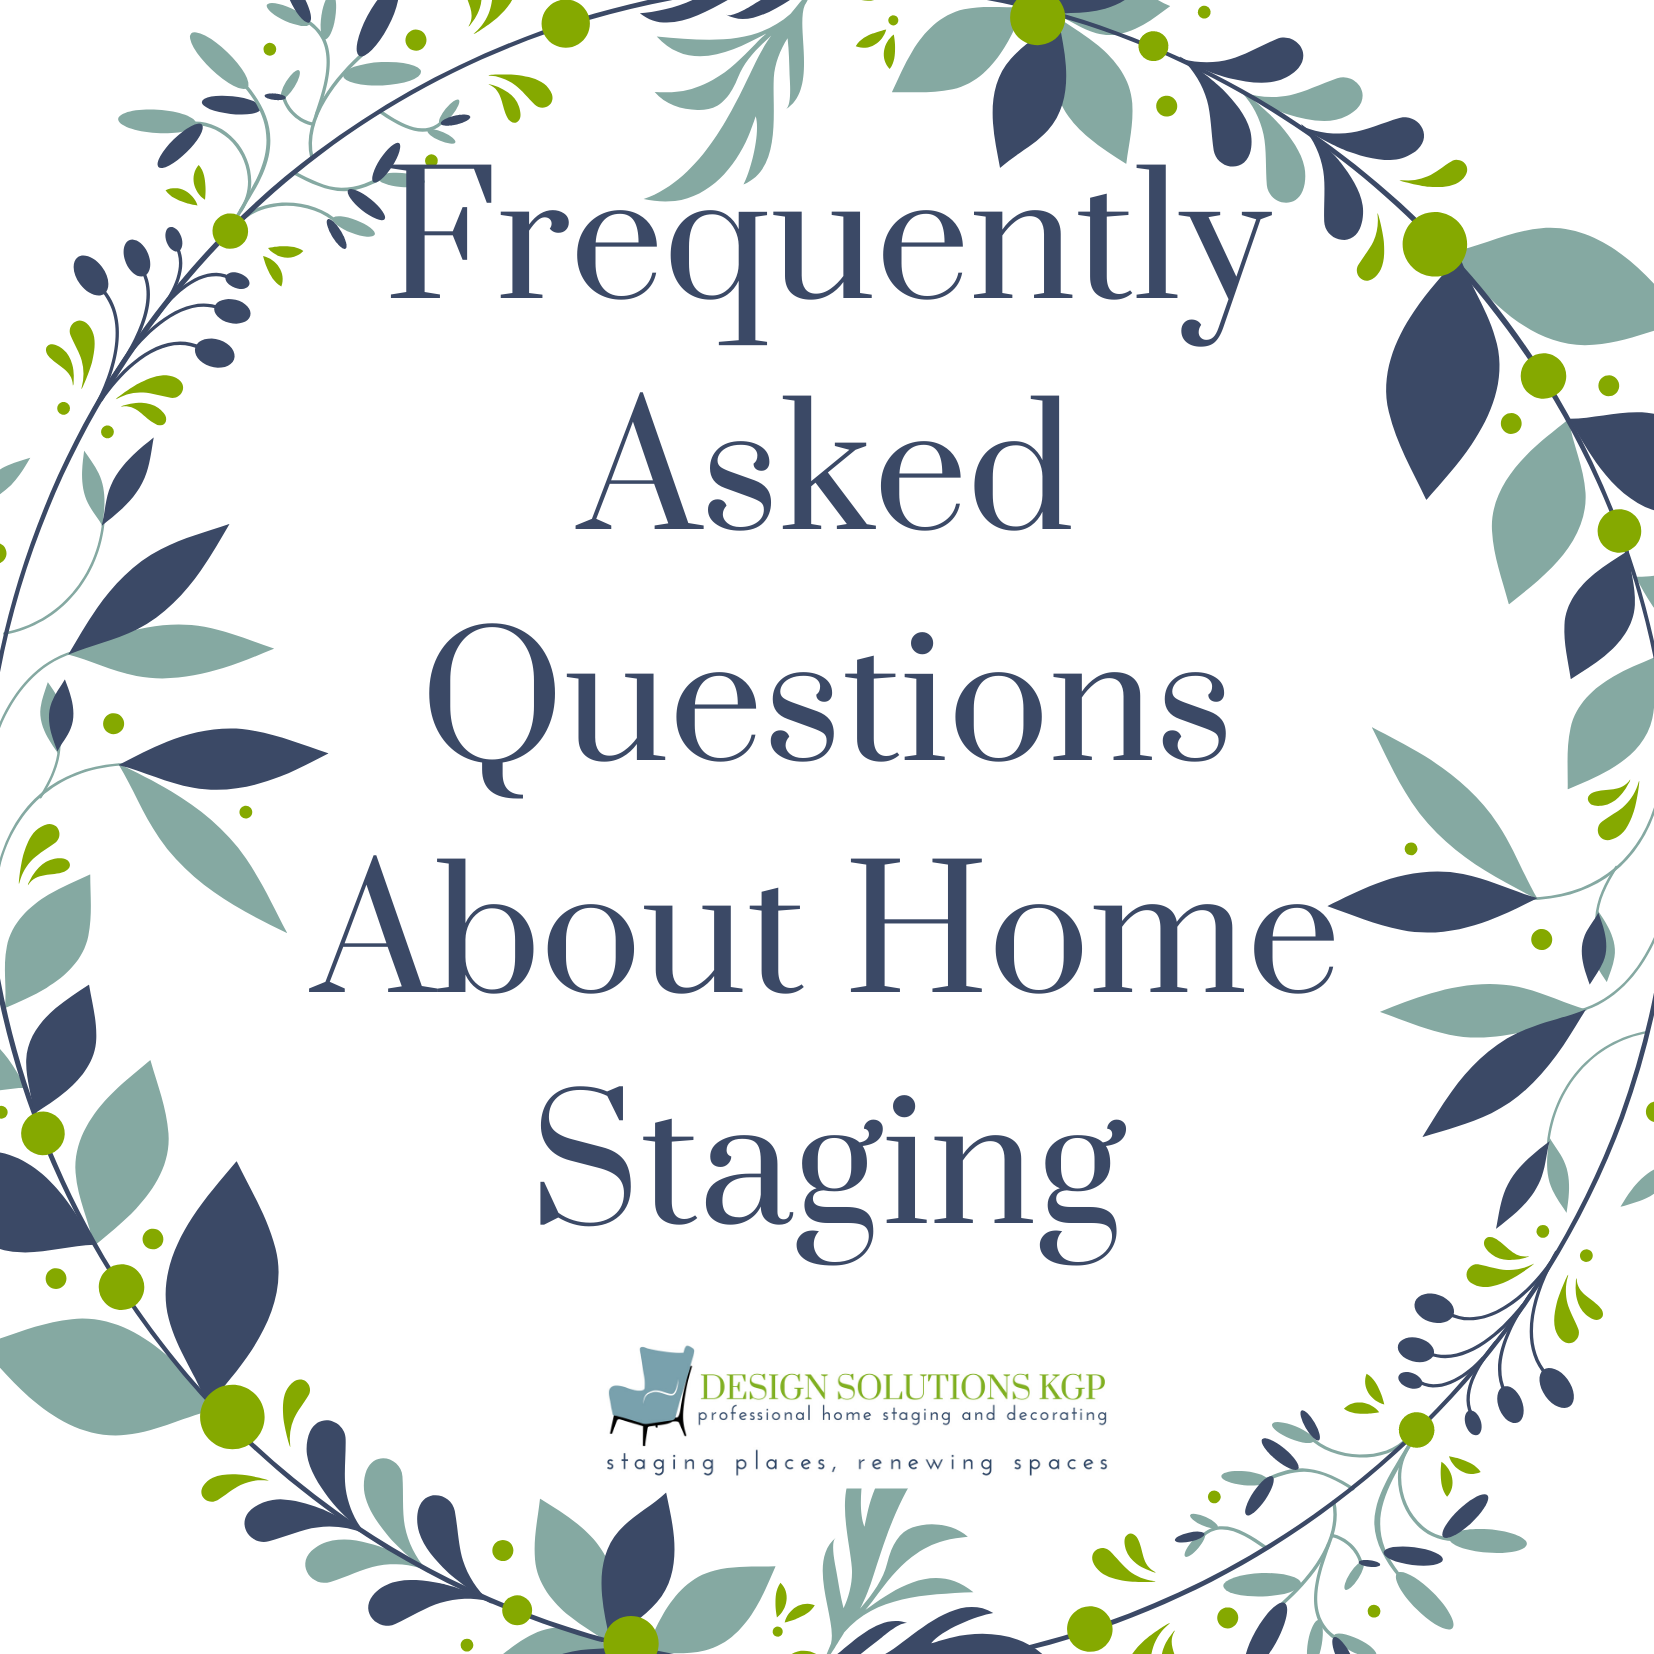 frequently asked questions about home staging